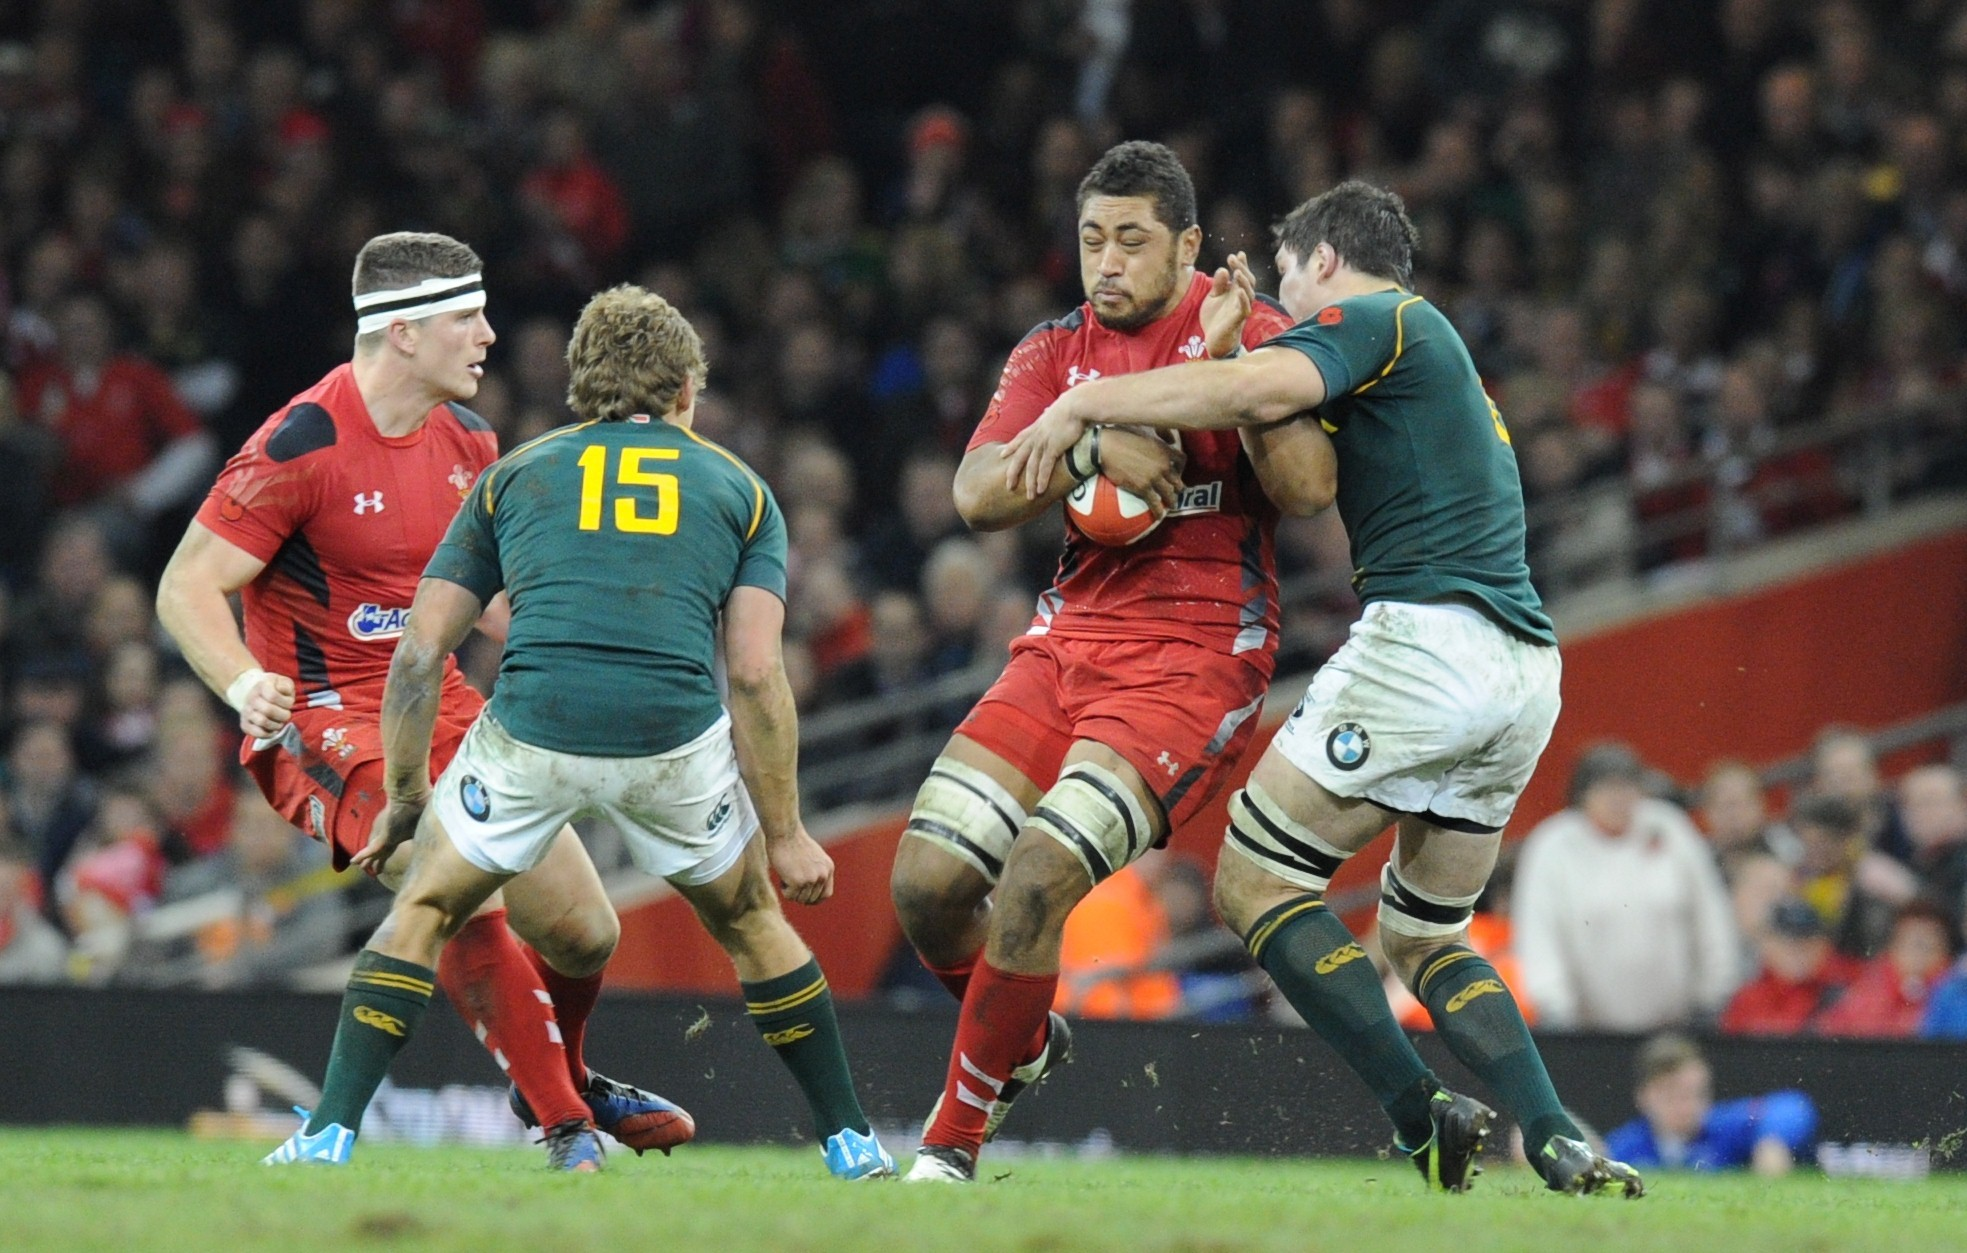 Toby Faletau is tackled by Francois Louw (2397256)